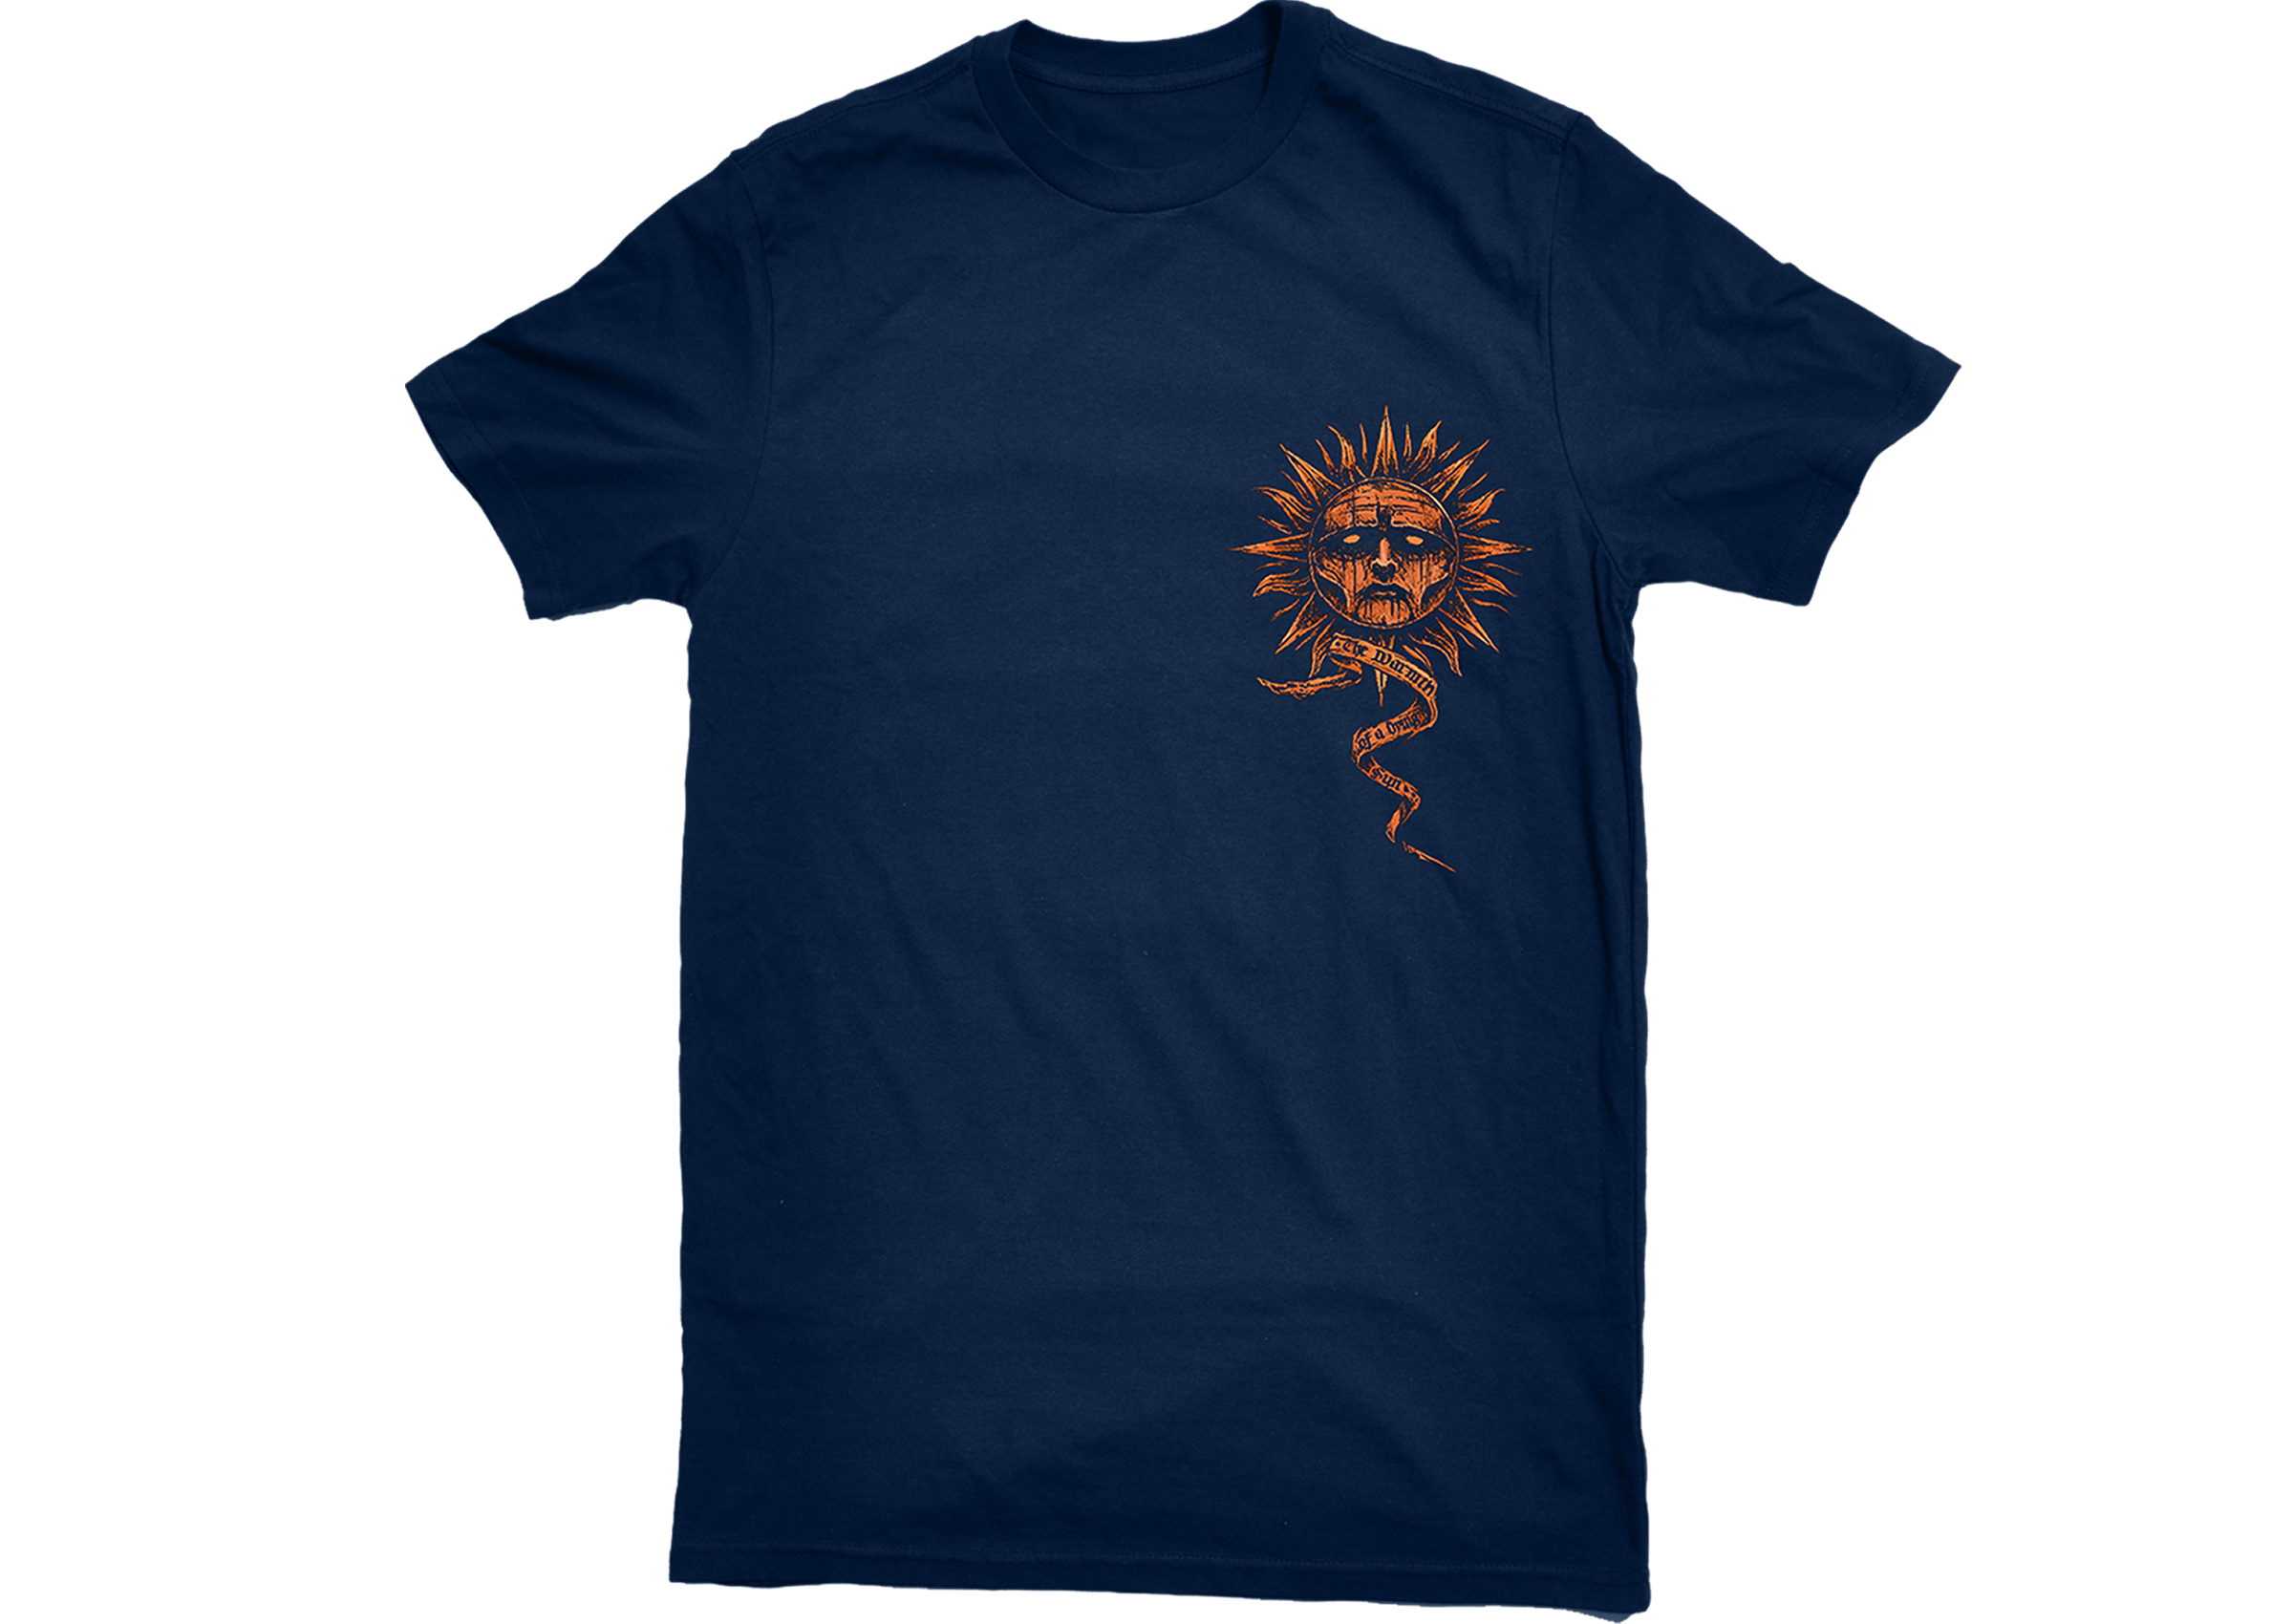 Employed To Serve - The Warmth Of A Dying Sun navy sun shirt